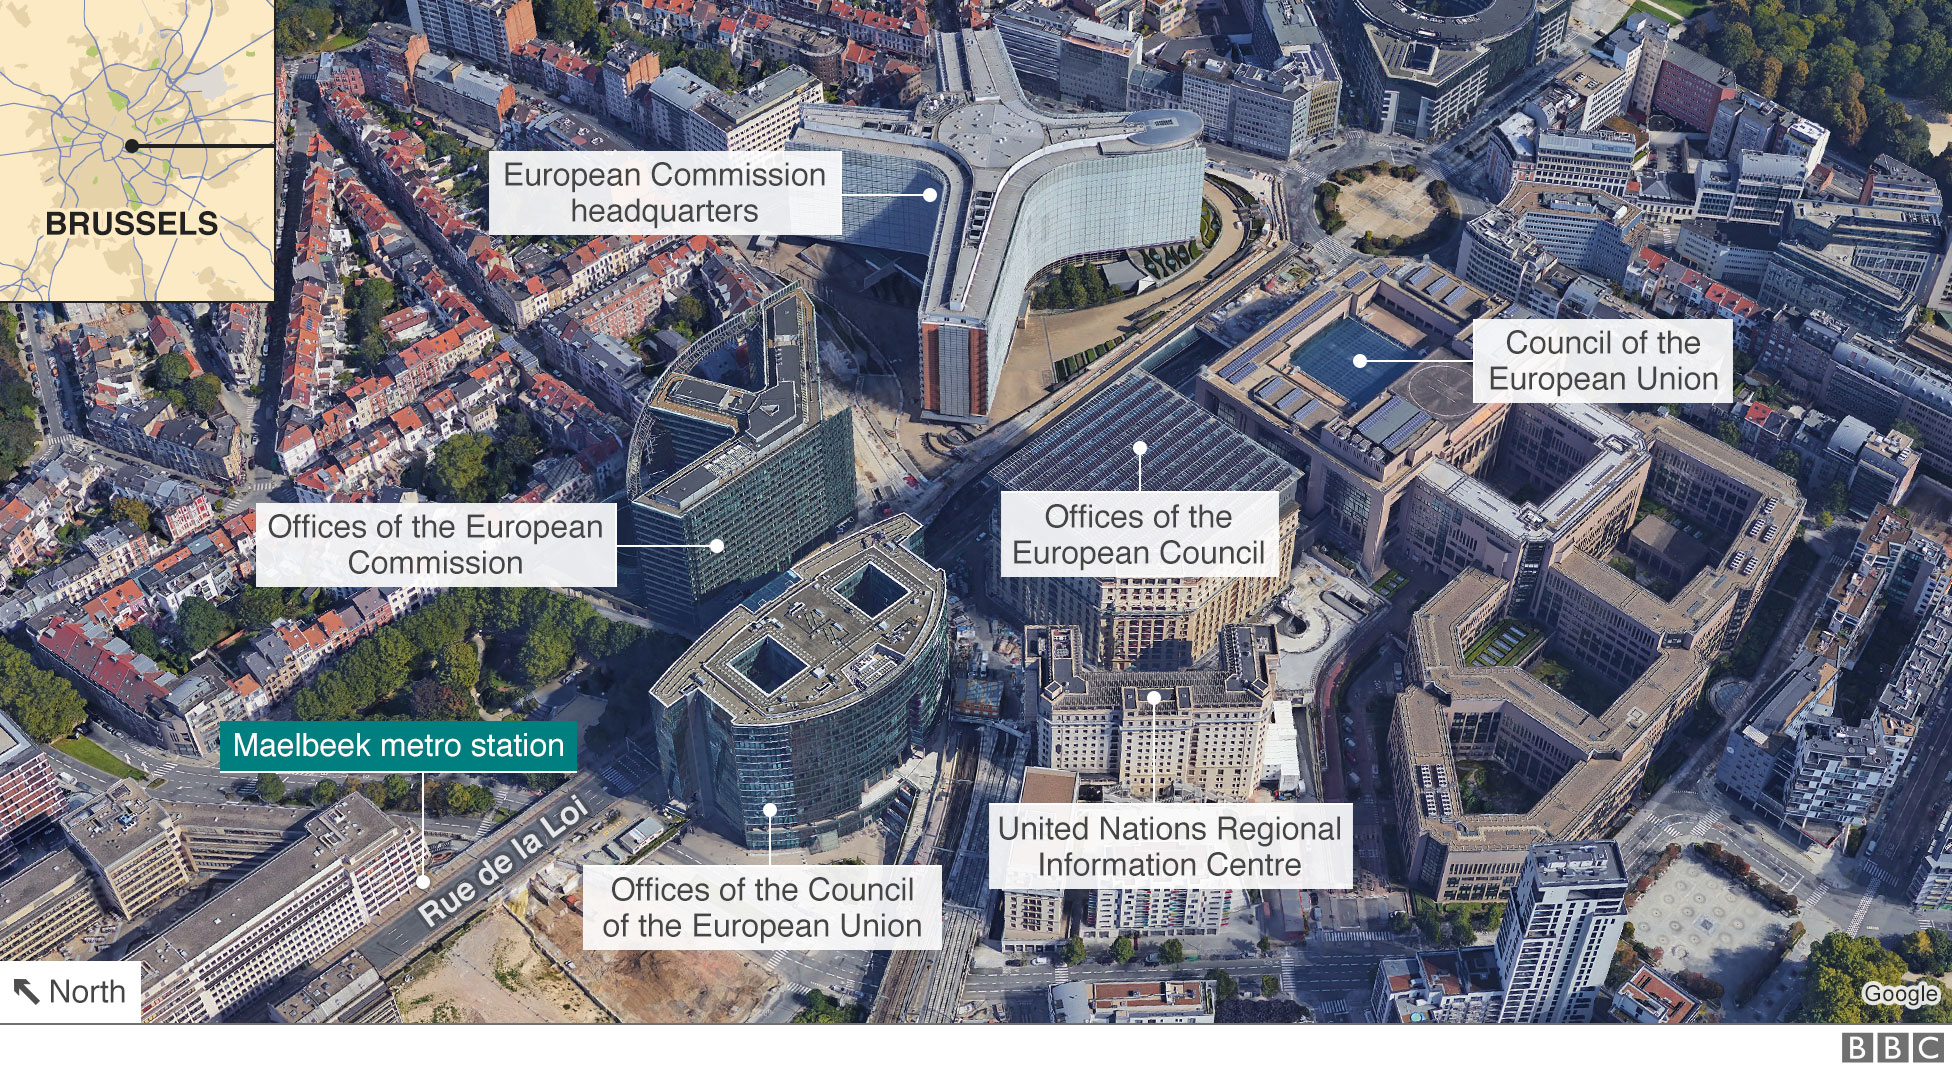 Brussels attack with image daughertyanna storify - European commission office ...